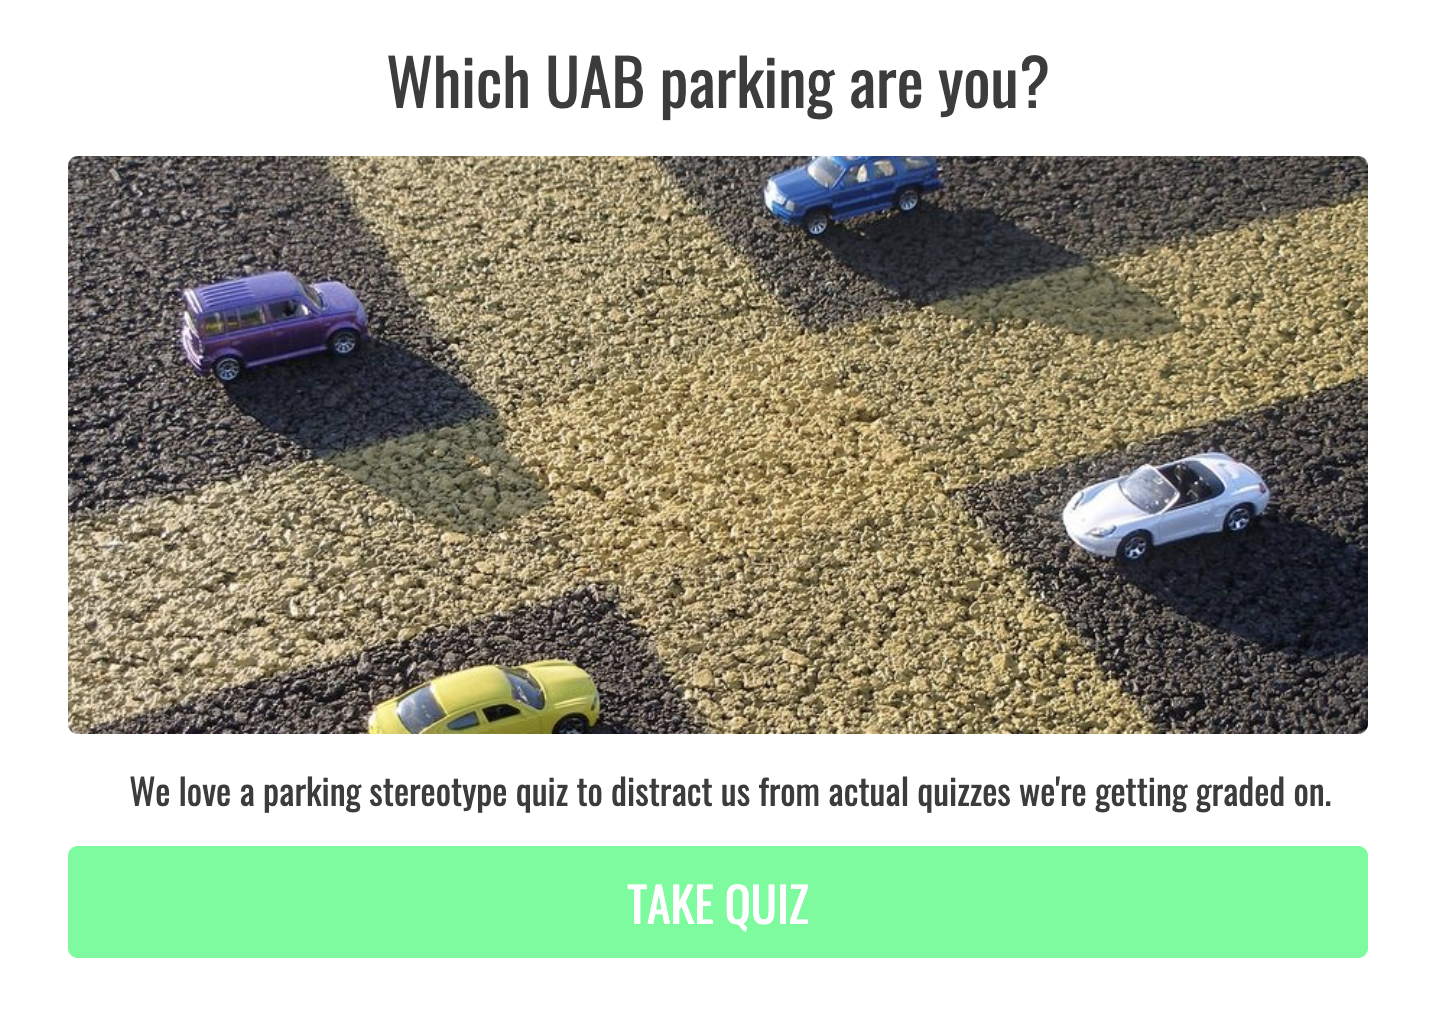 quiz cover for college quiz about parking location